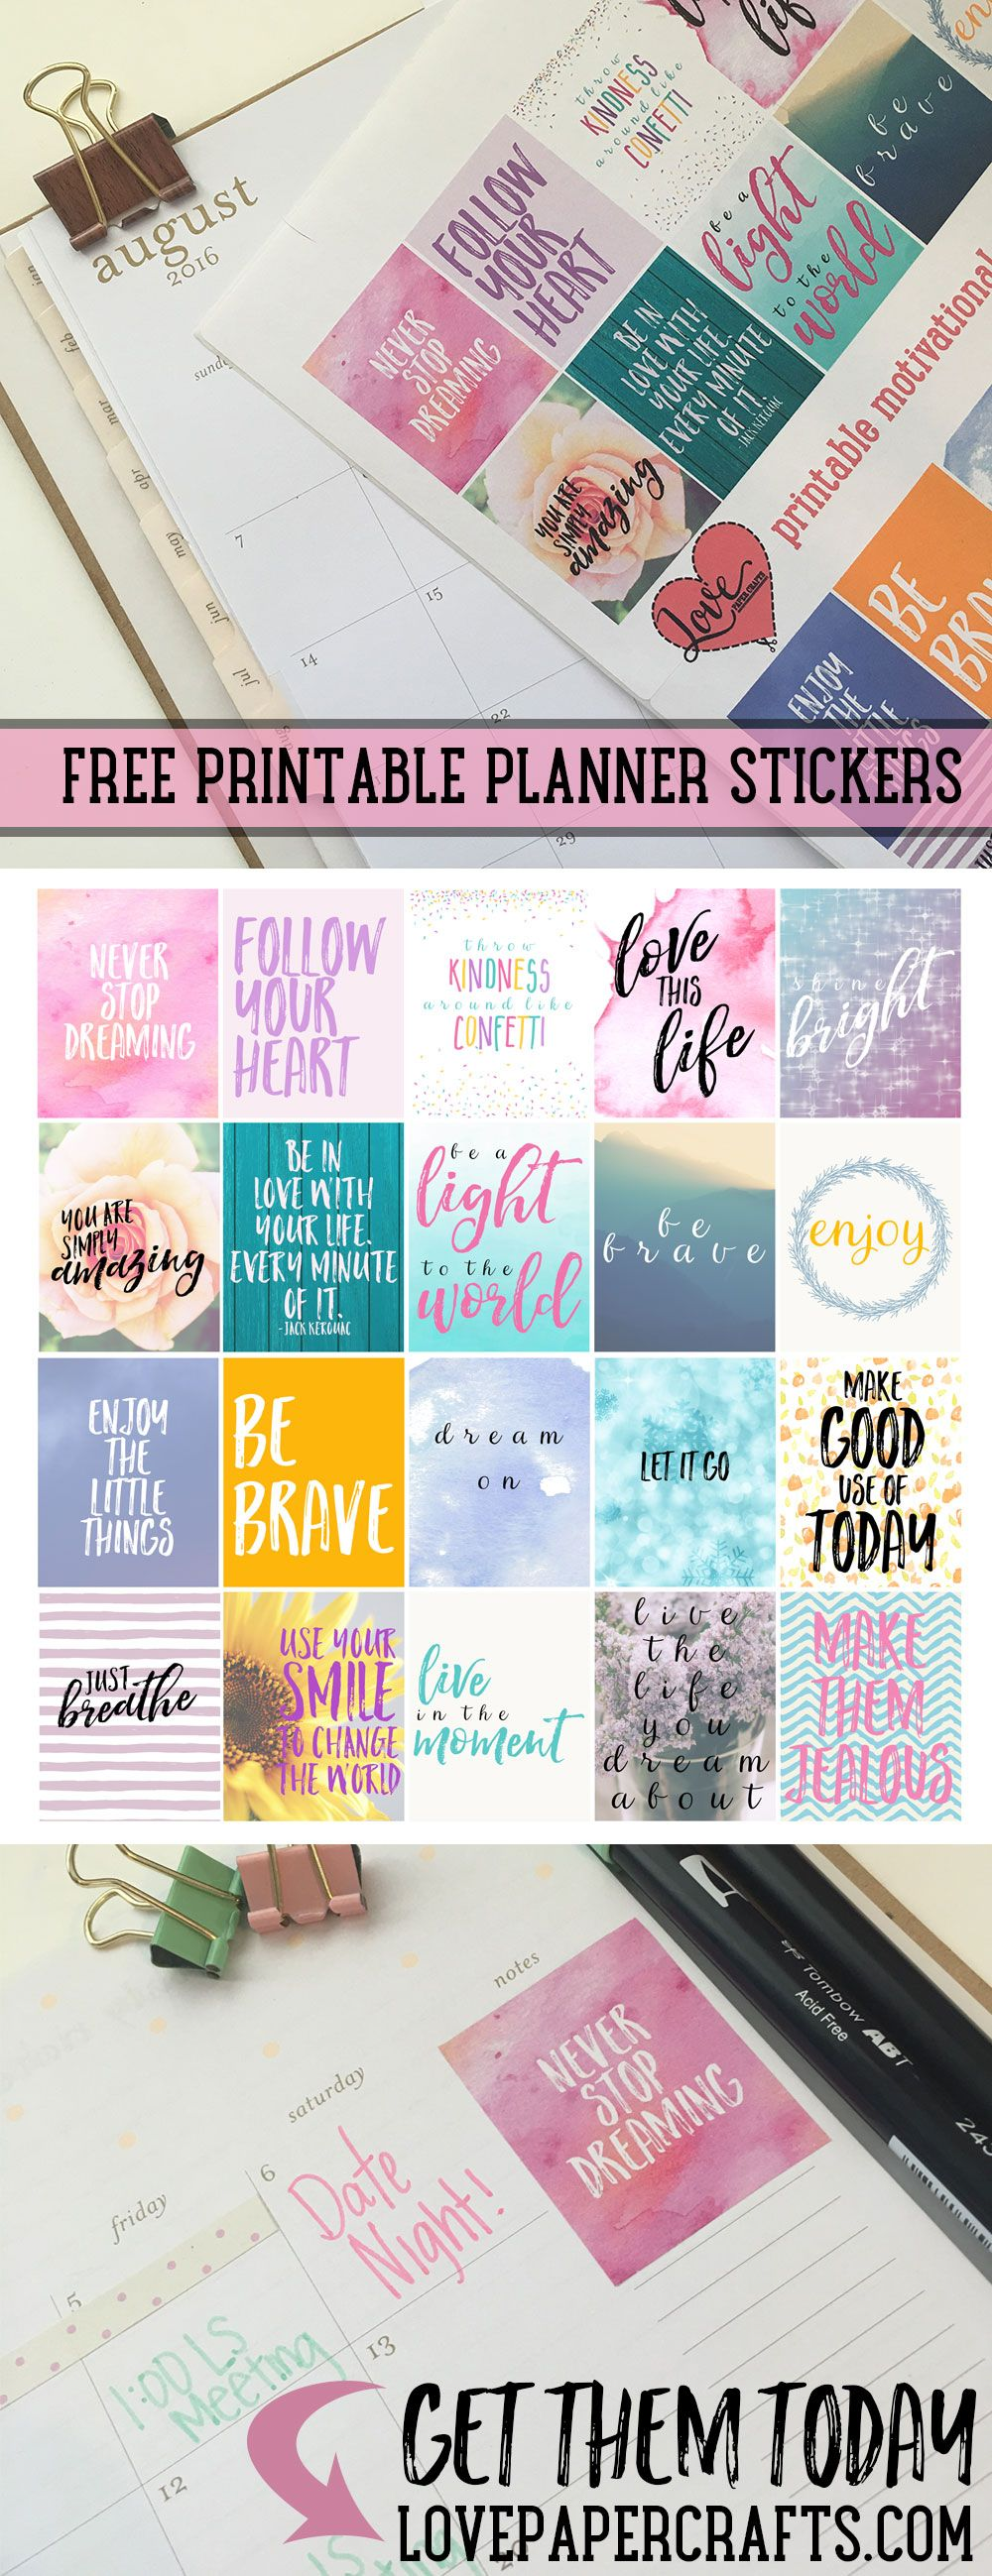 It's just a photo of Transformative Planner Printables Stickers